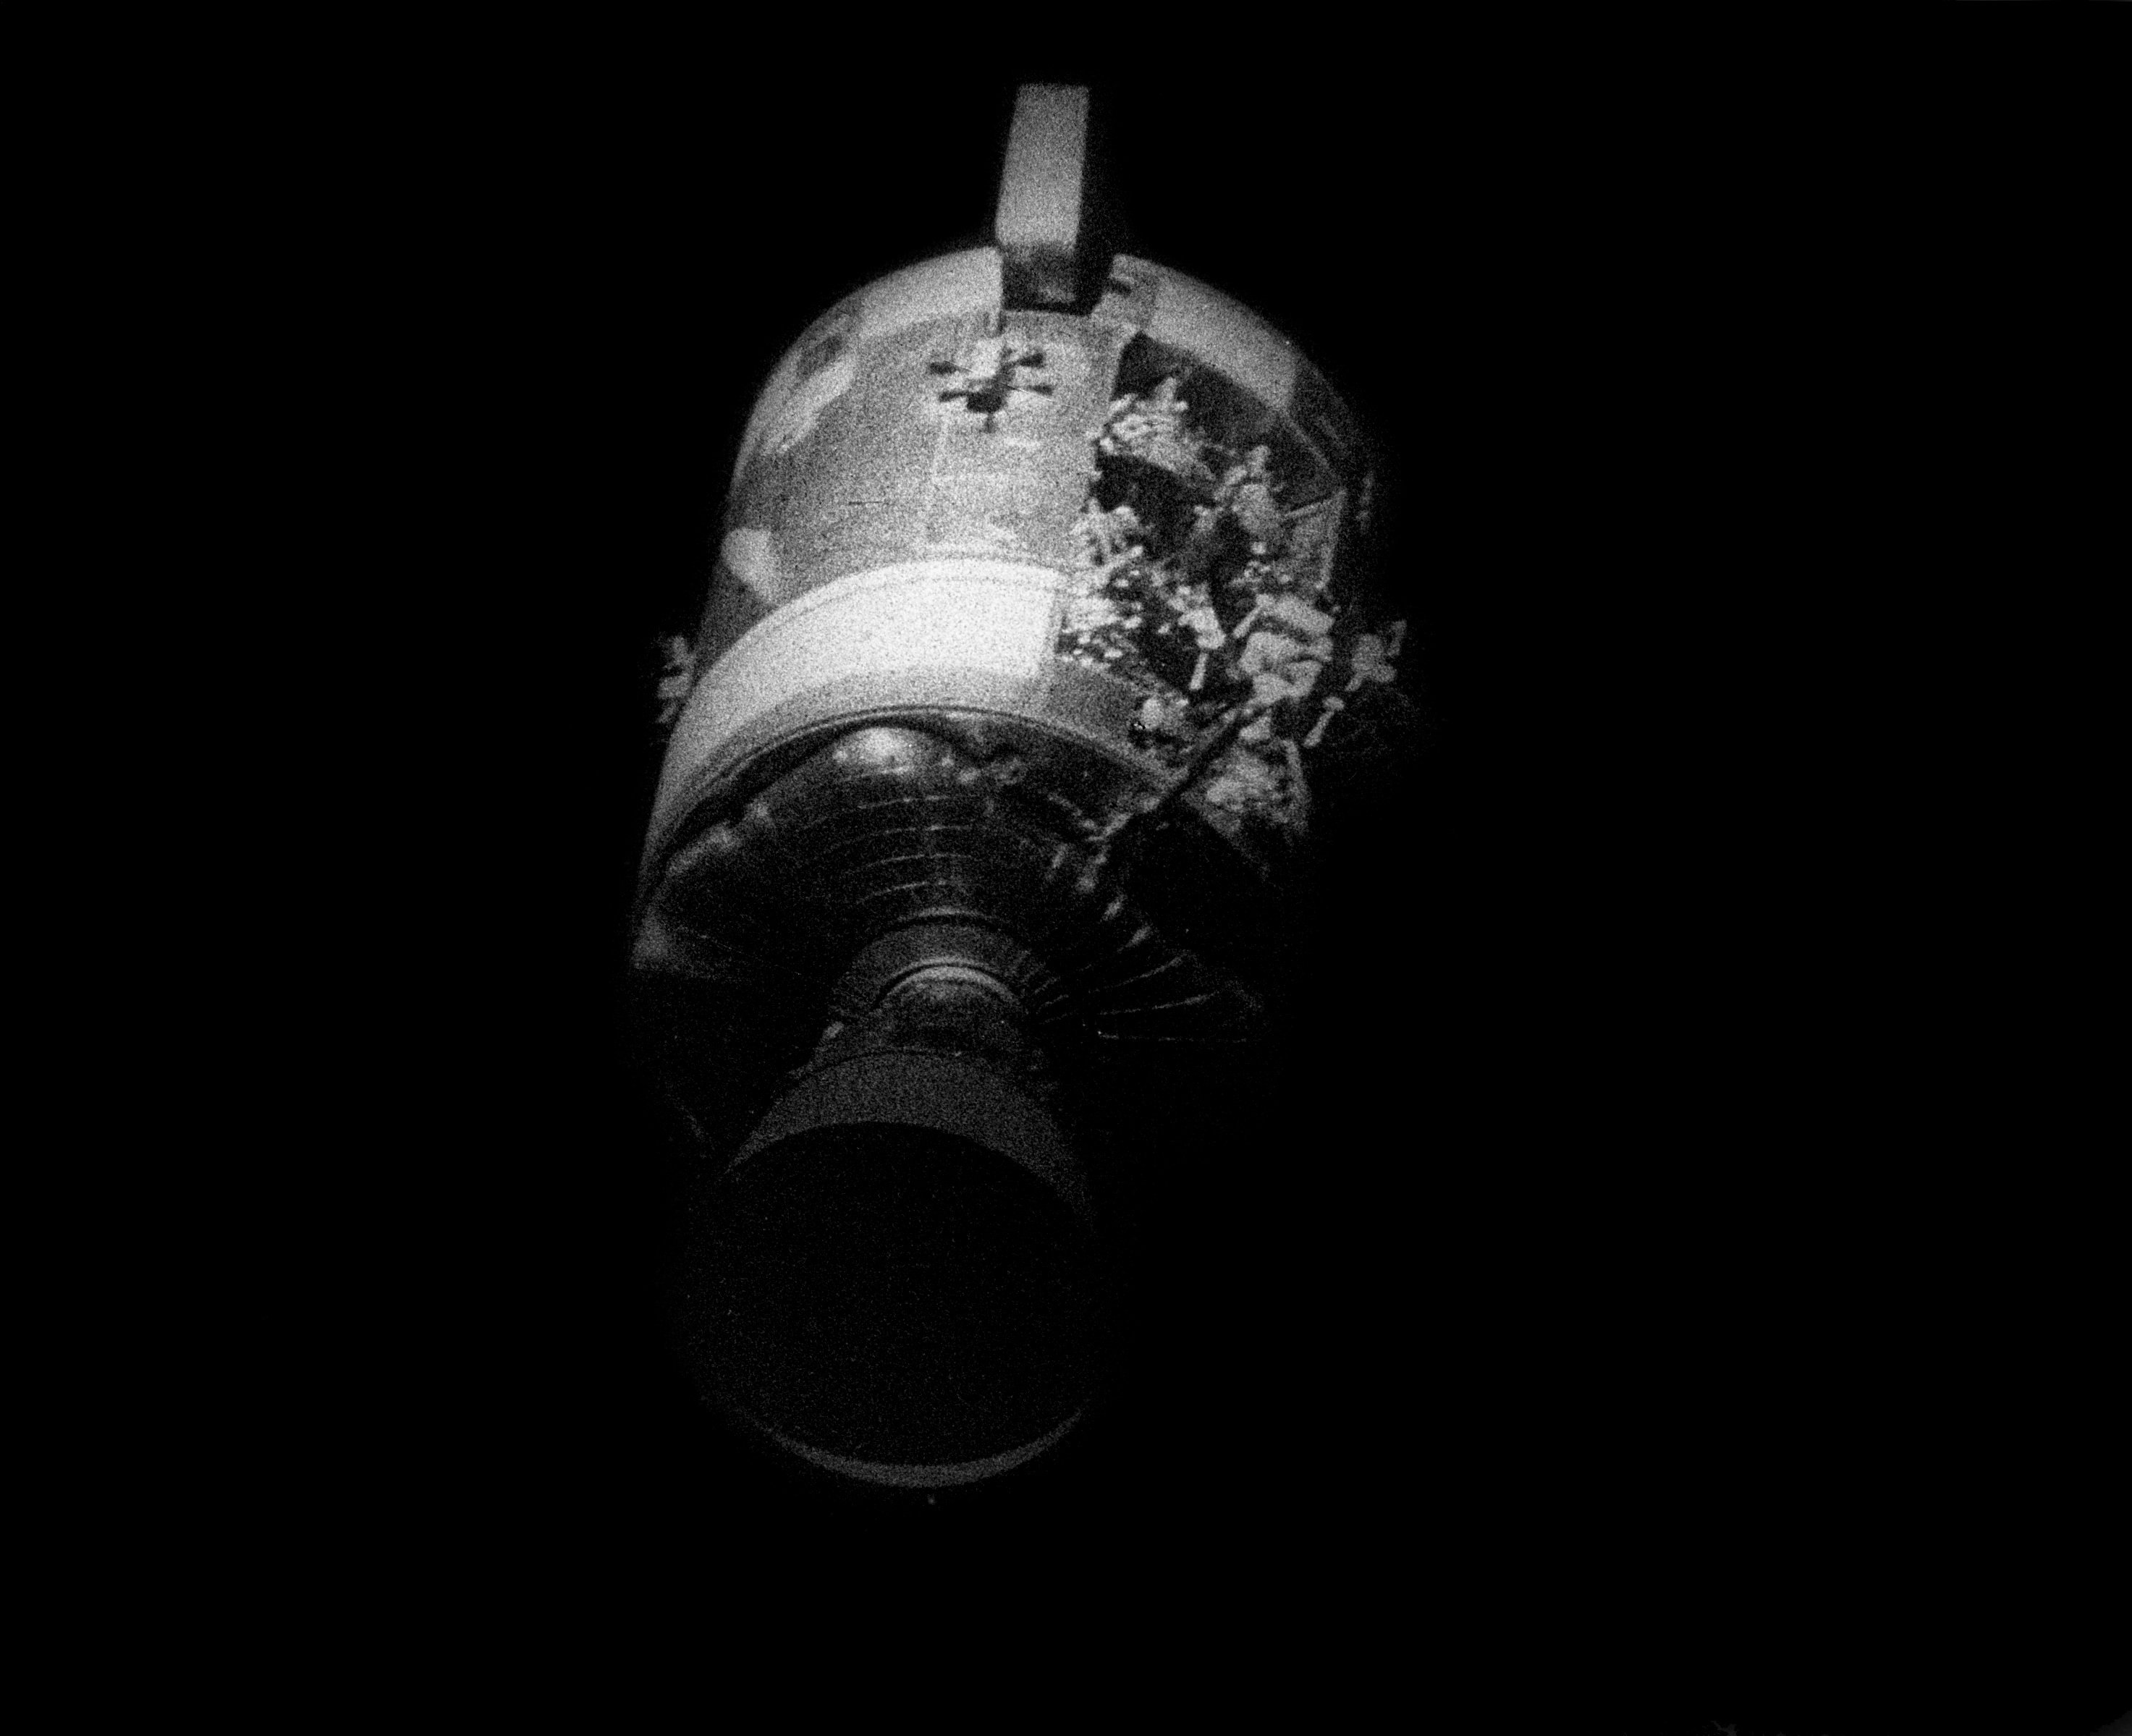 Apollo 13's Damaged Service Module after being jettisoned